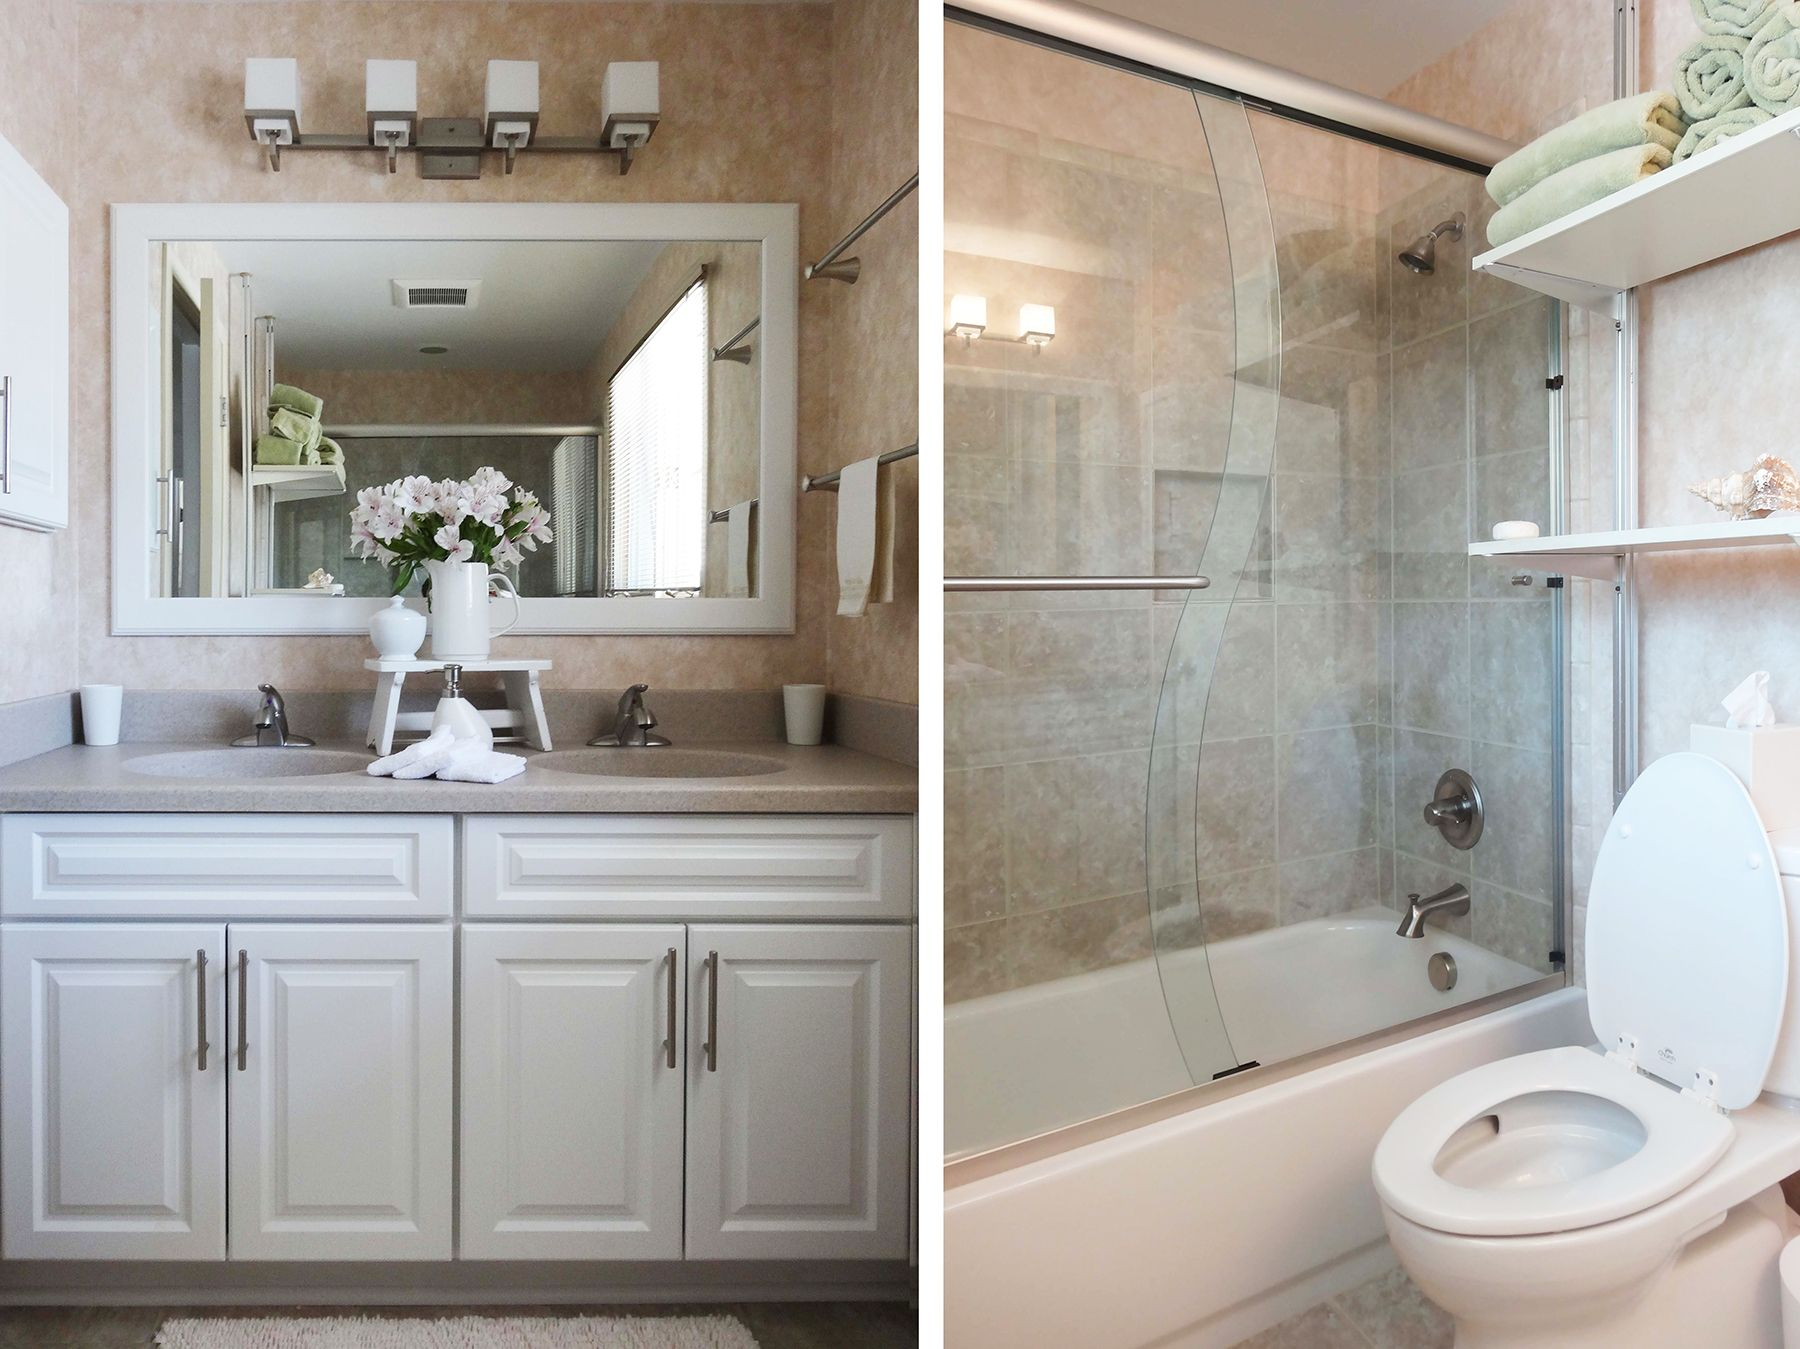 A Beautiful Ann Arbor Small Bathroom Remodel Featuring Onyx Countertops In Cucino Medallion Cabinetry Winterberry And Heathland Ceramic Shower